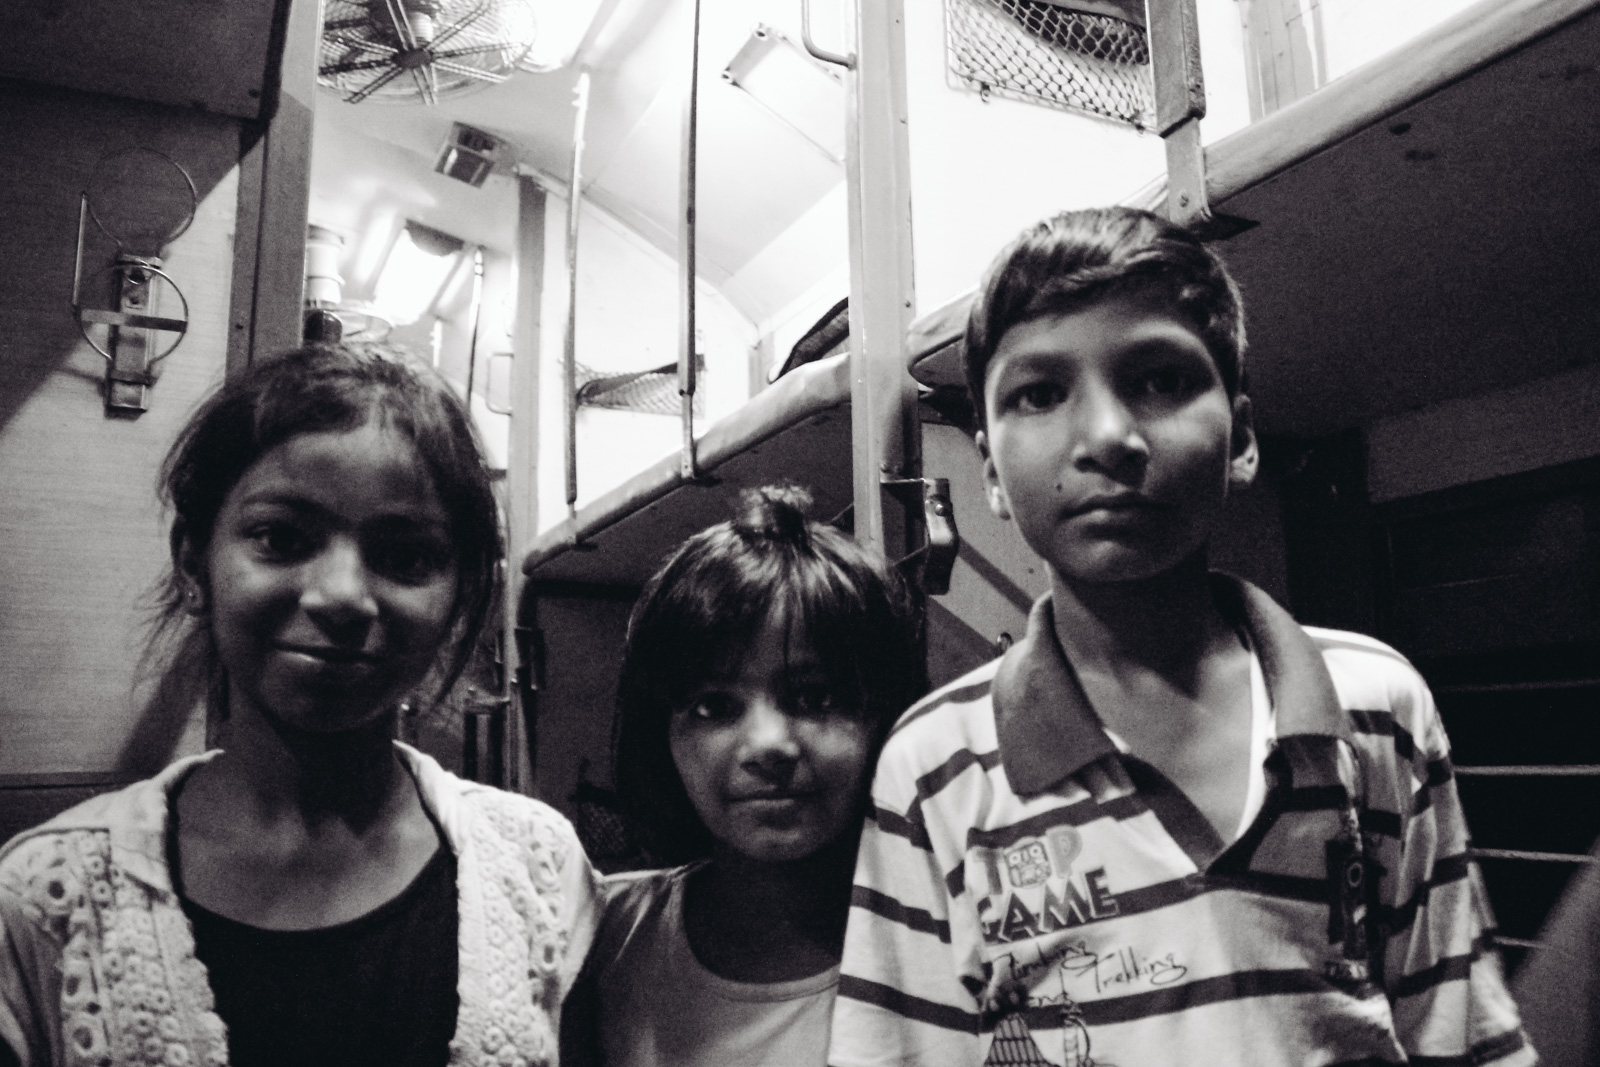 the-travel-stories-27-hours-train-india-lukas-sommer-9094